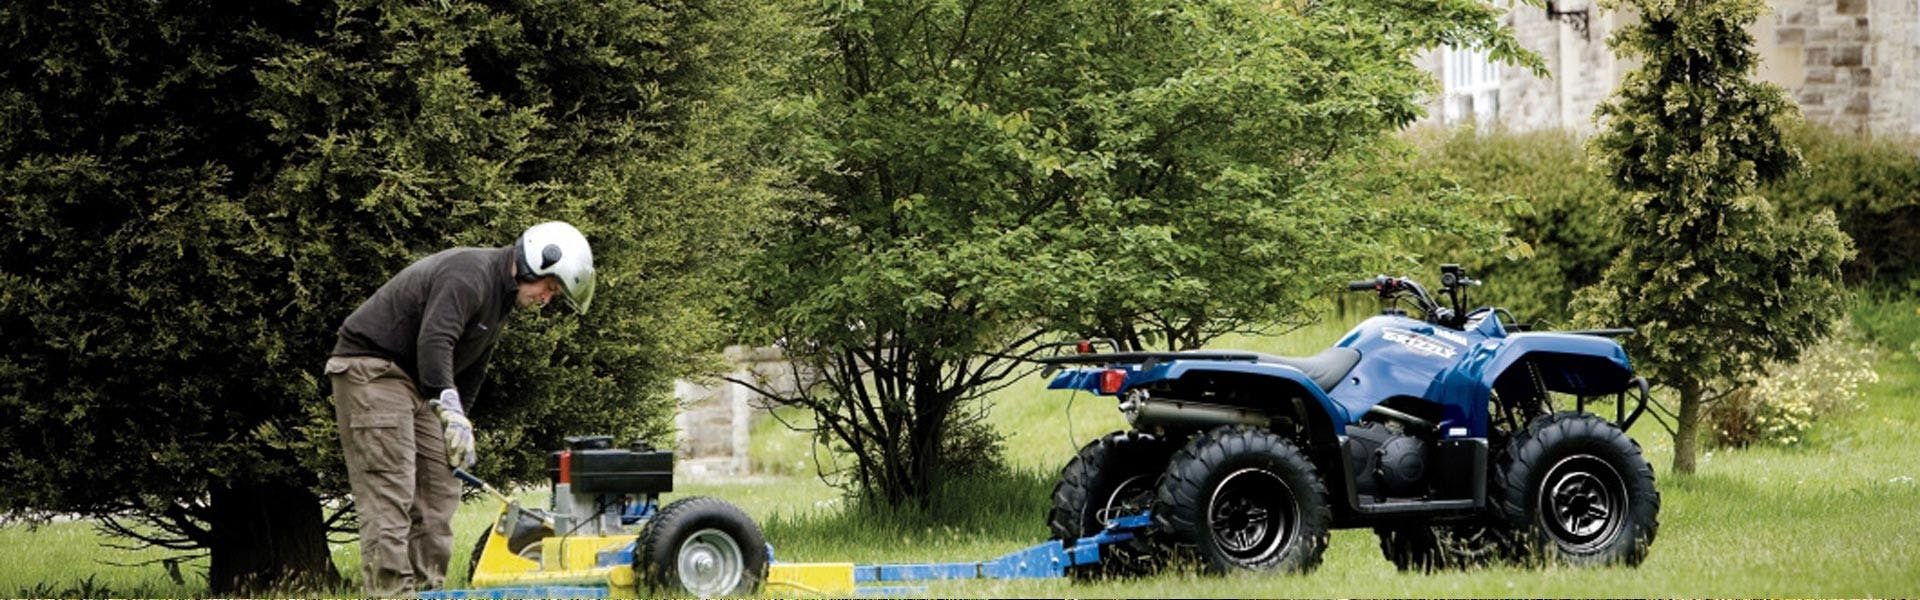 Yamaha Grizzly 350 2WD in Steel Blue towing machine